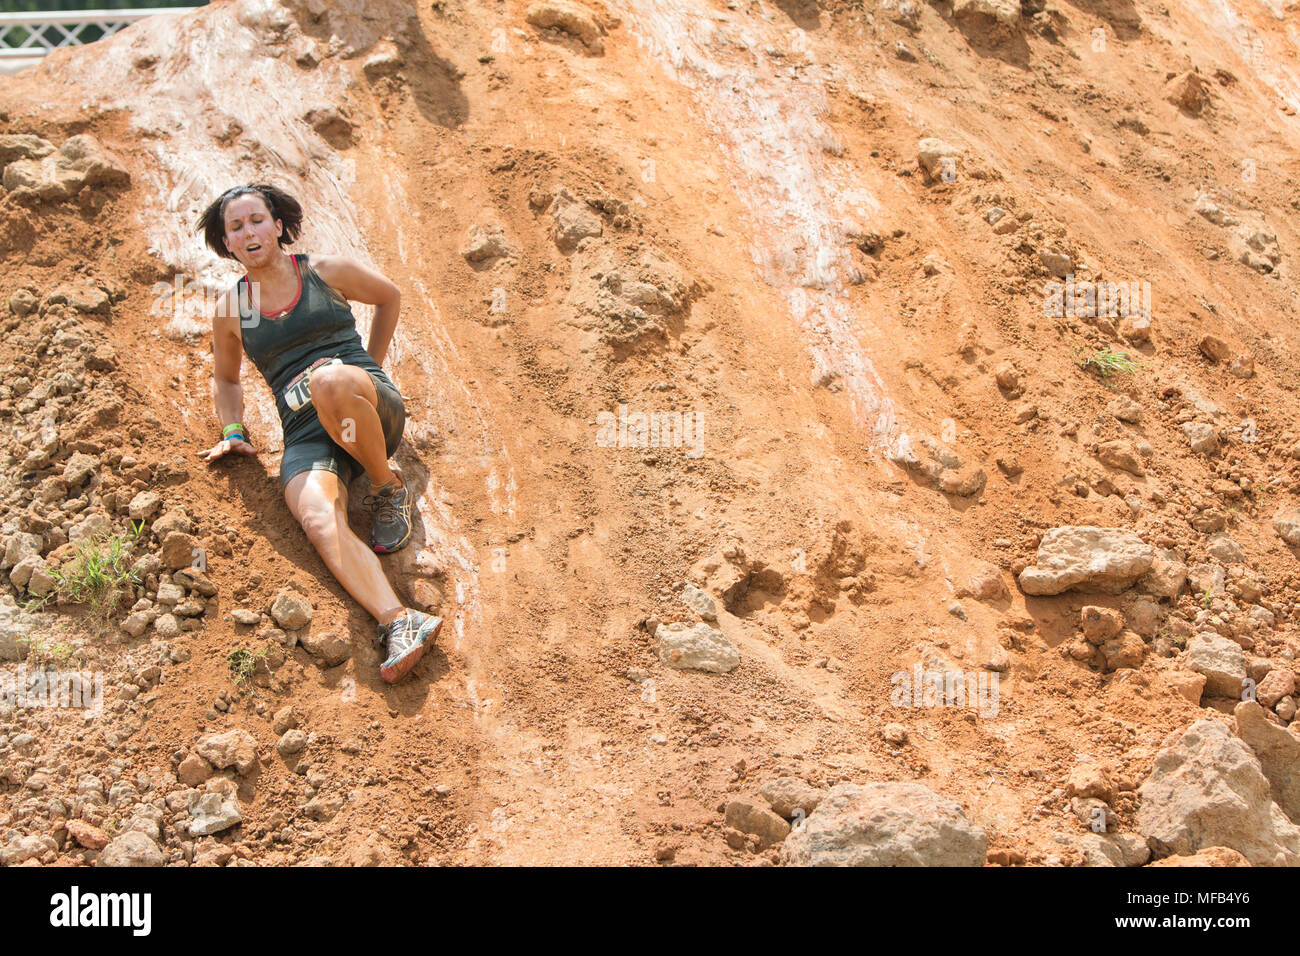 A young woman struggles to make her way down a slippery dirt hill at the Rugged Maniac Obstacle Course on August 22, 2015 in Conyers, GA. - Stock Image